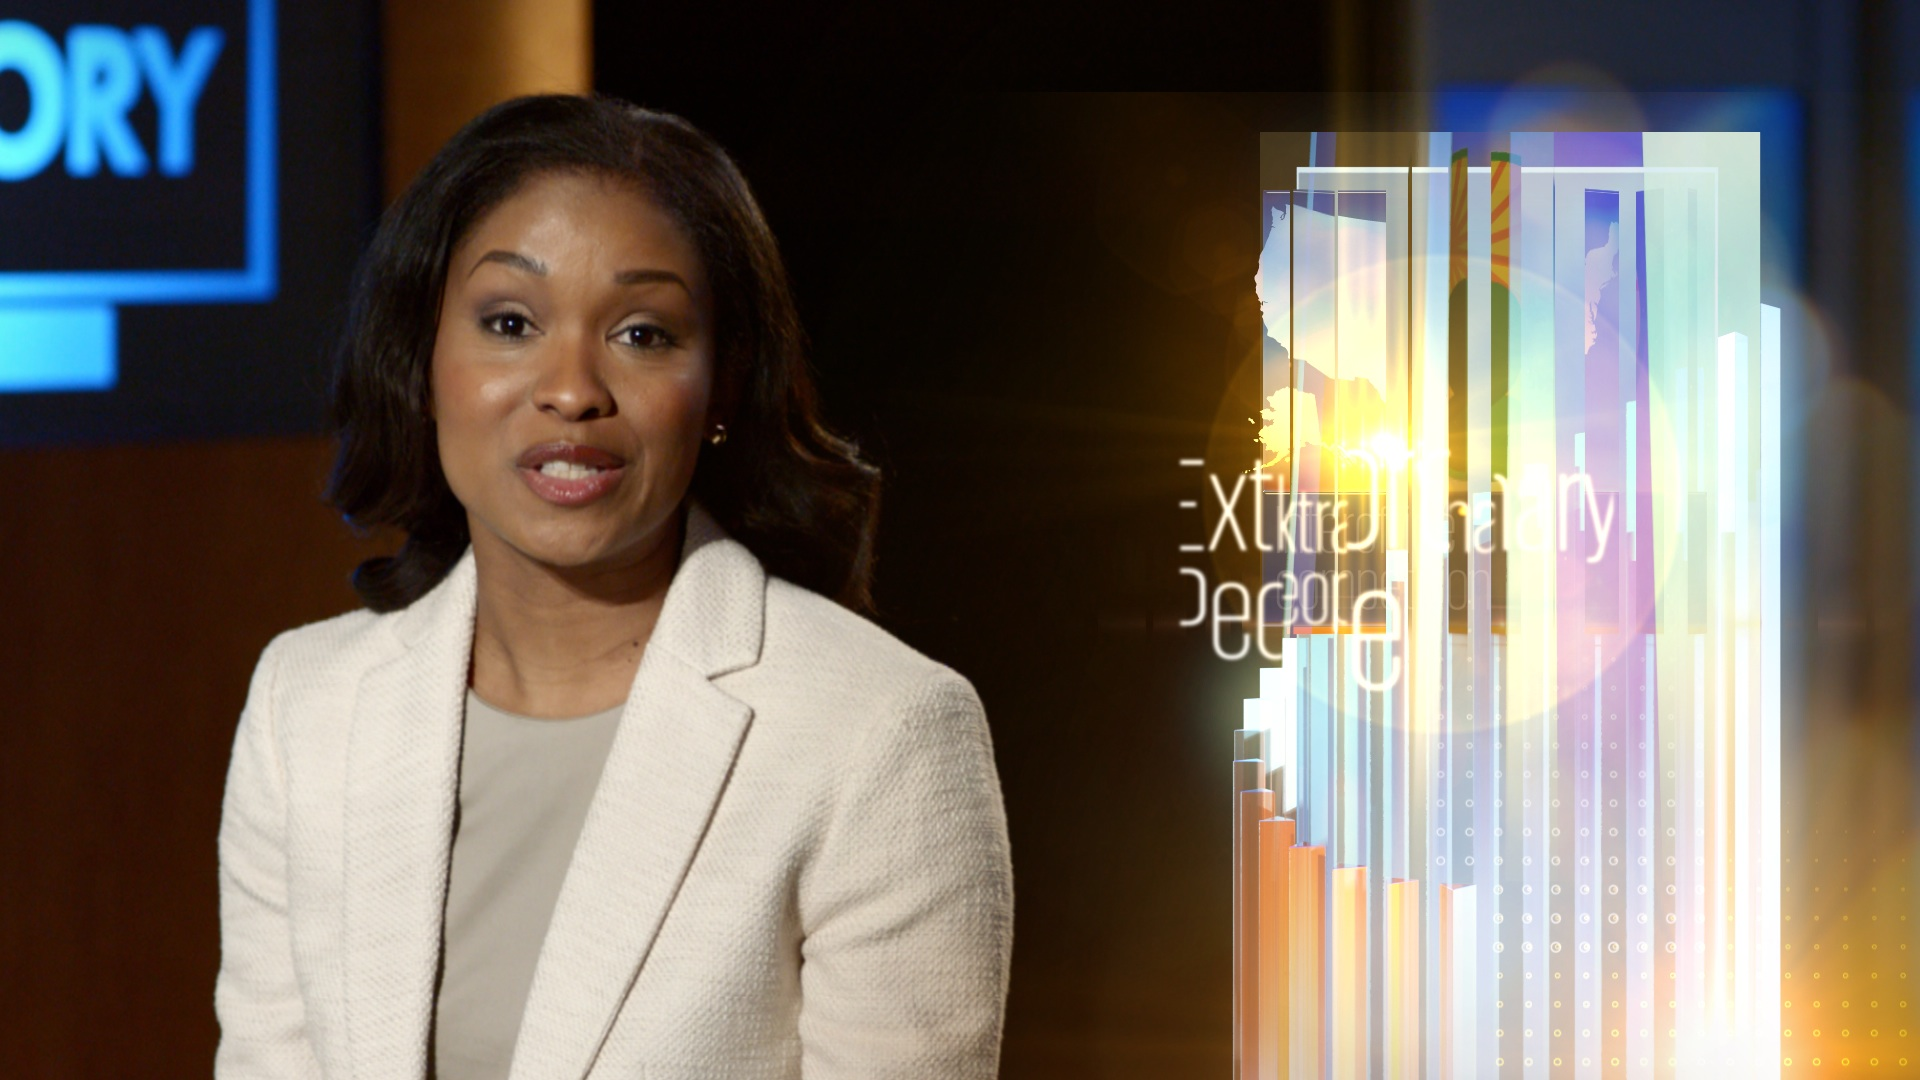 sports news graphics format for corporate video | Spot the Story | jonberrydesign